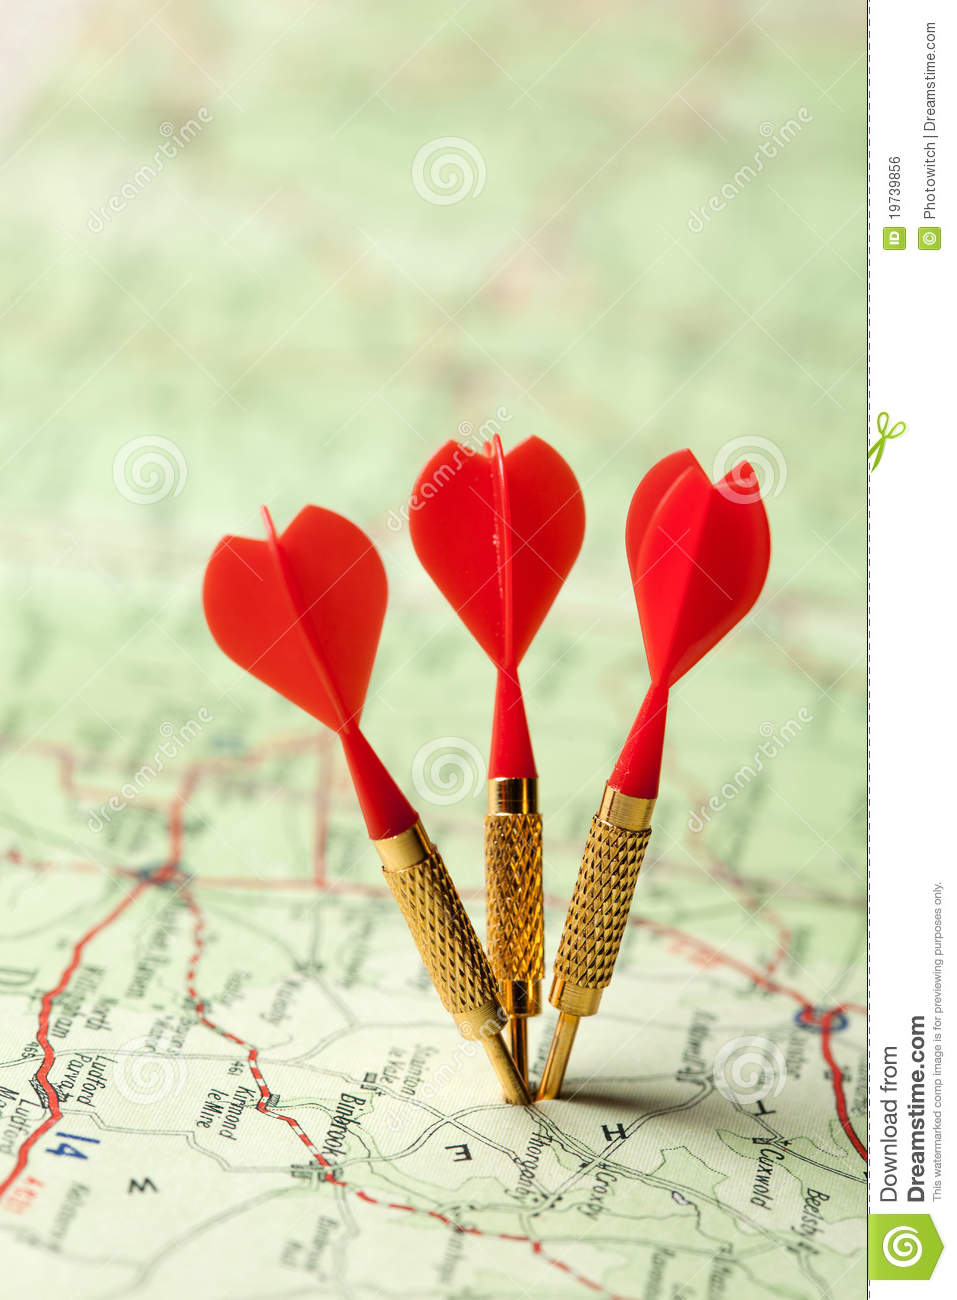 Red darts in a road map stock photo. Image of mapping - 19739856 on